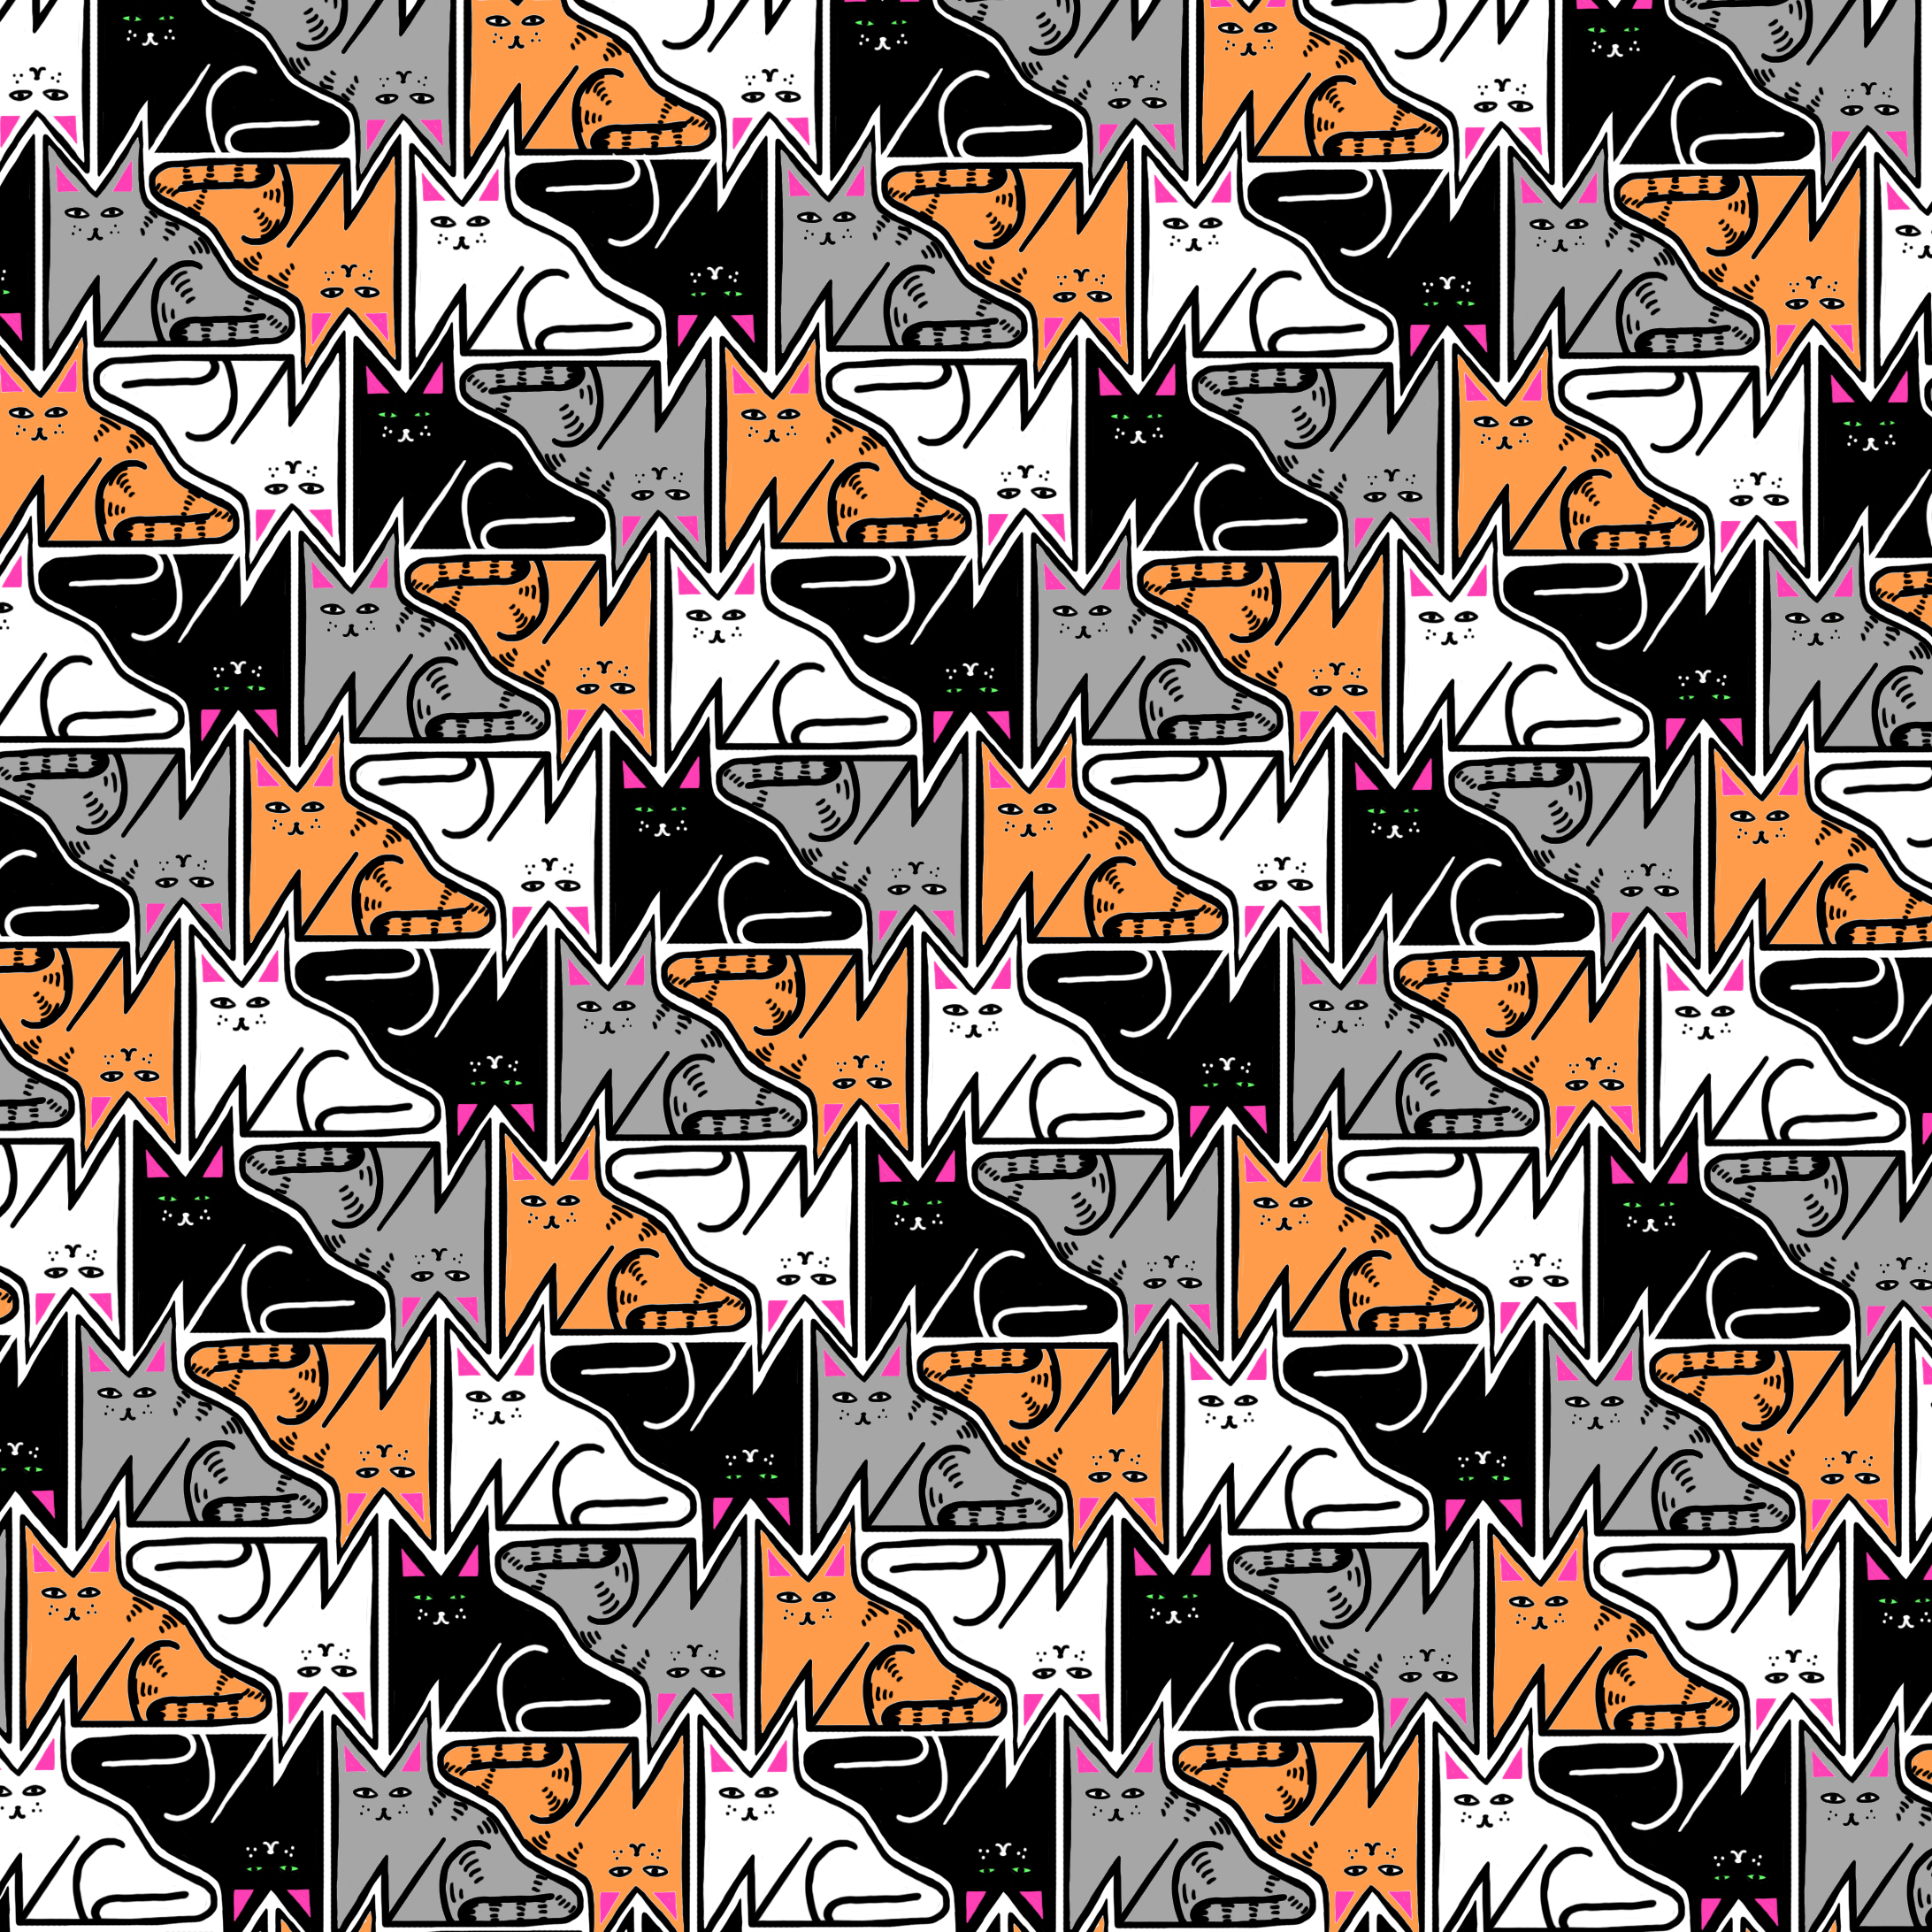 Catto Pattern, Photoshop